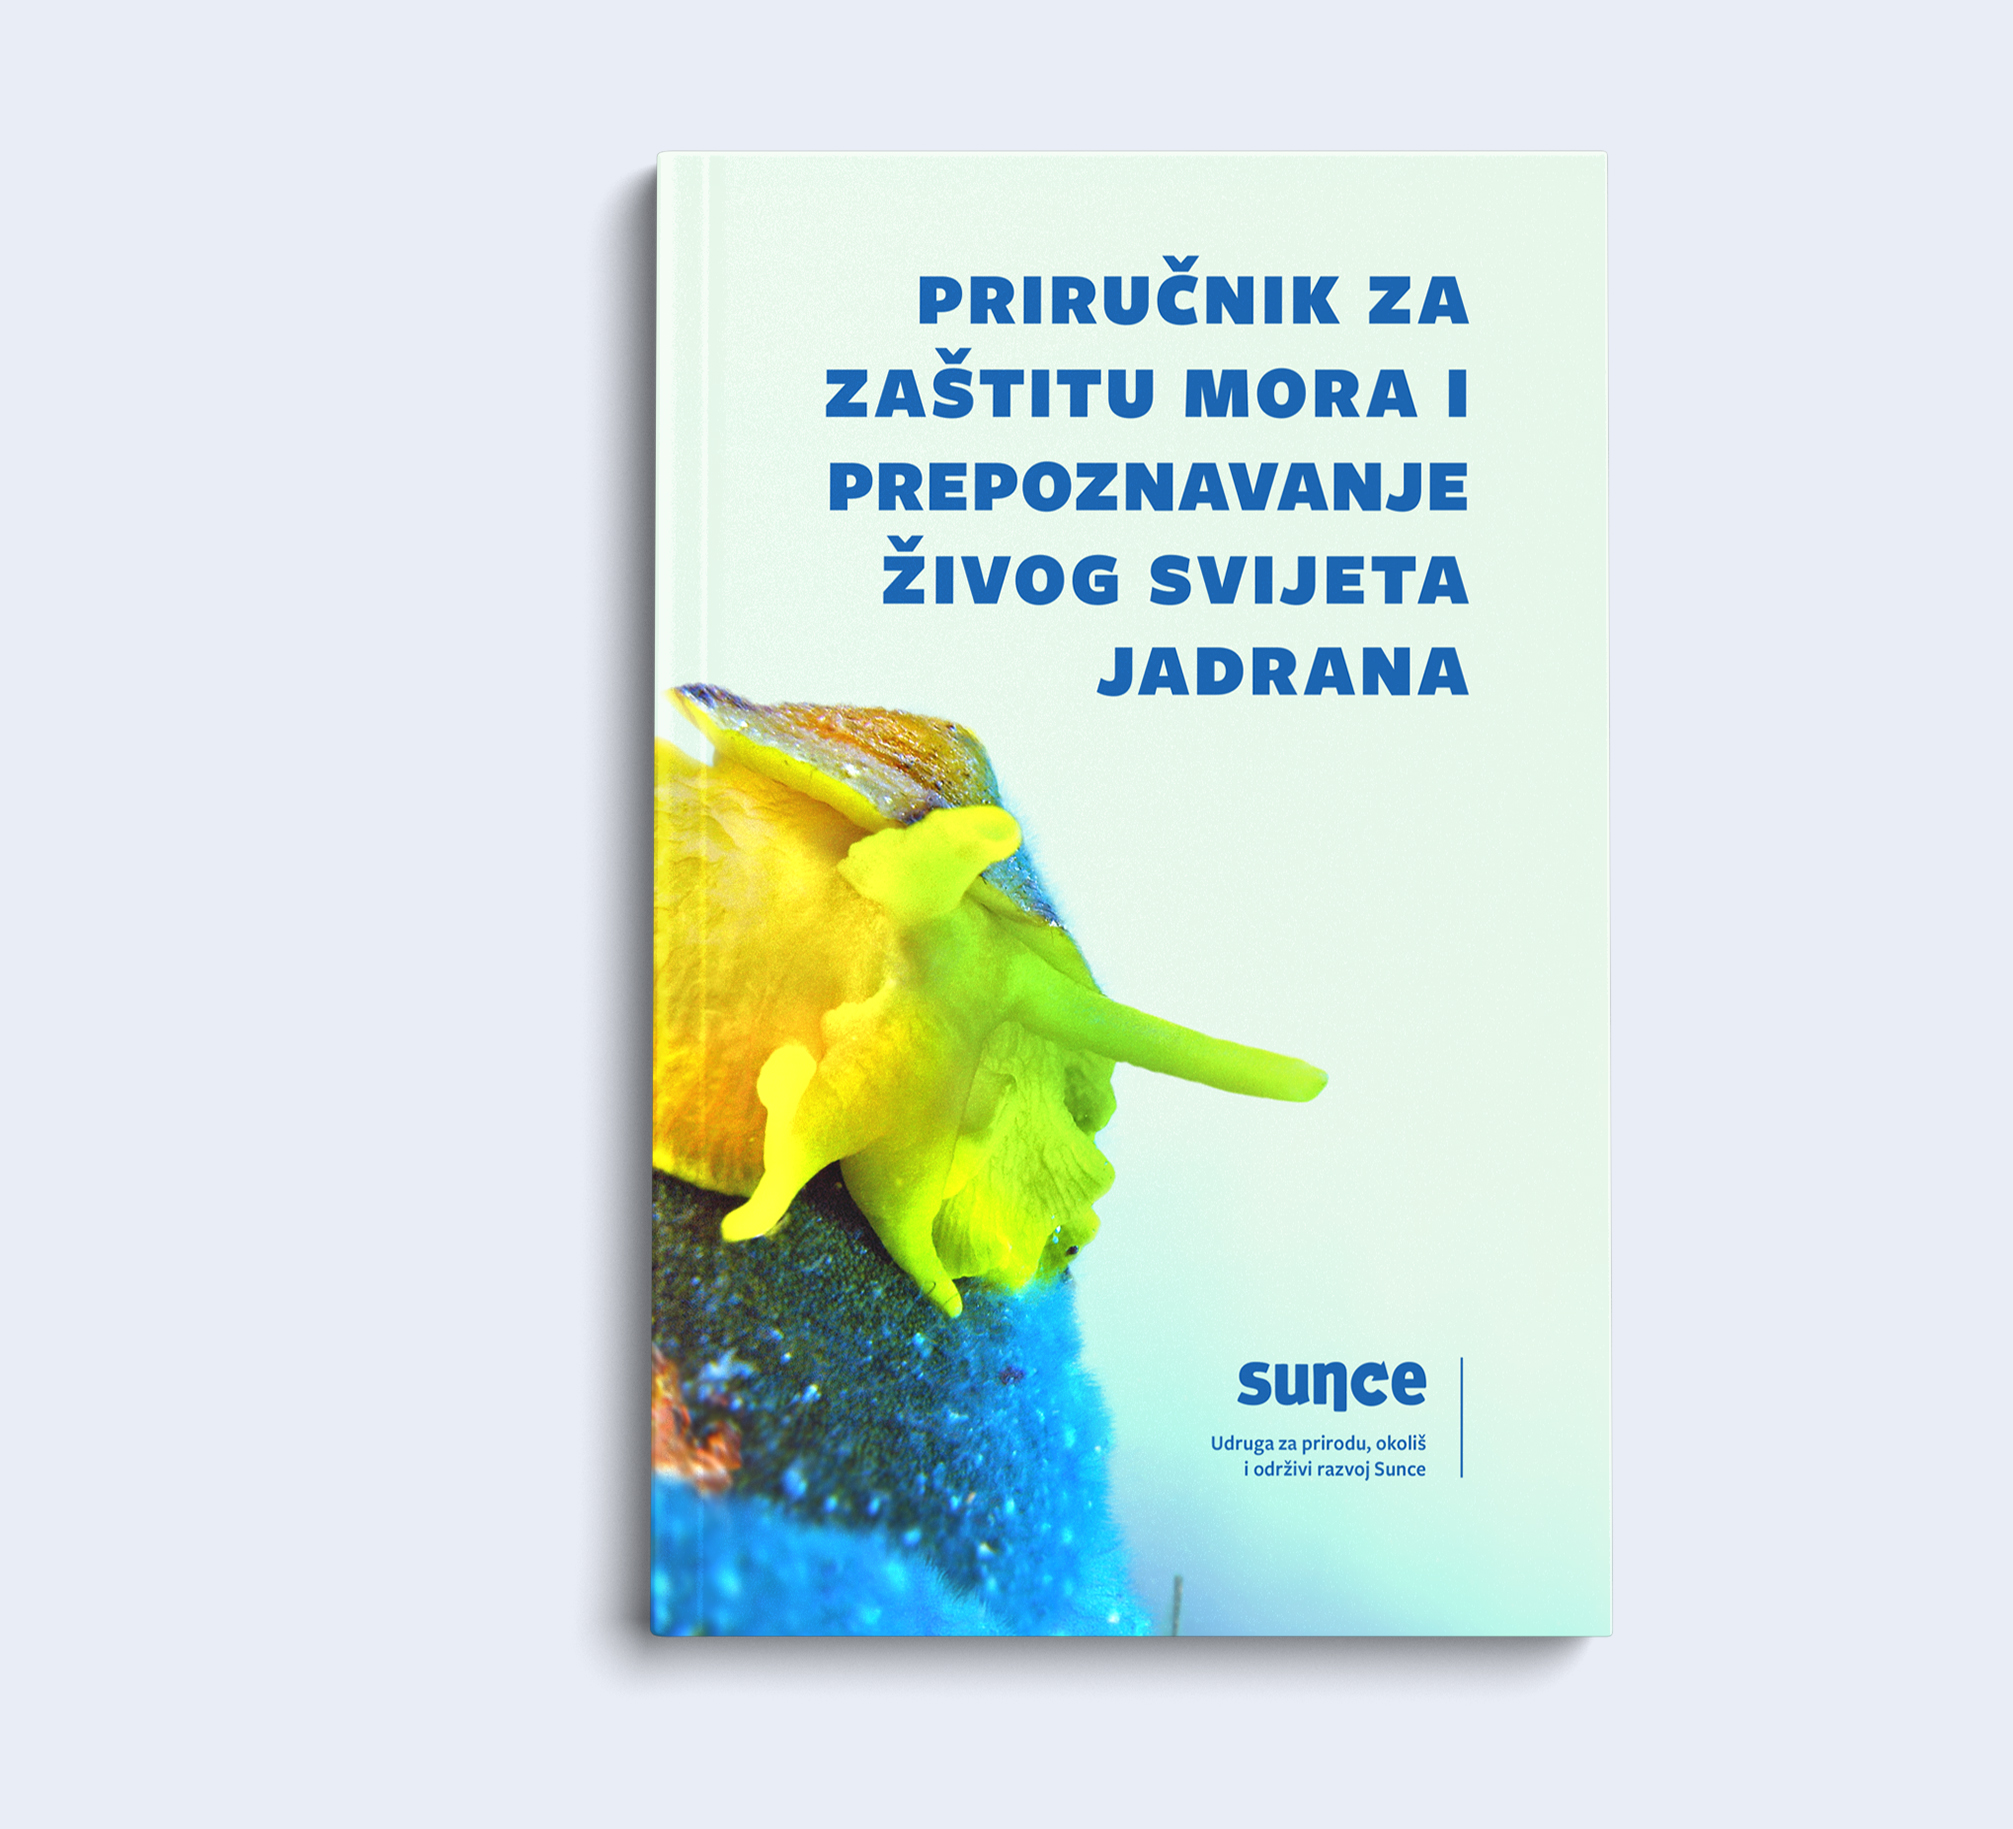 Handbook for marine protection and recognition of the living world of the Adriatic.